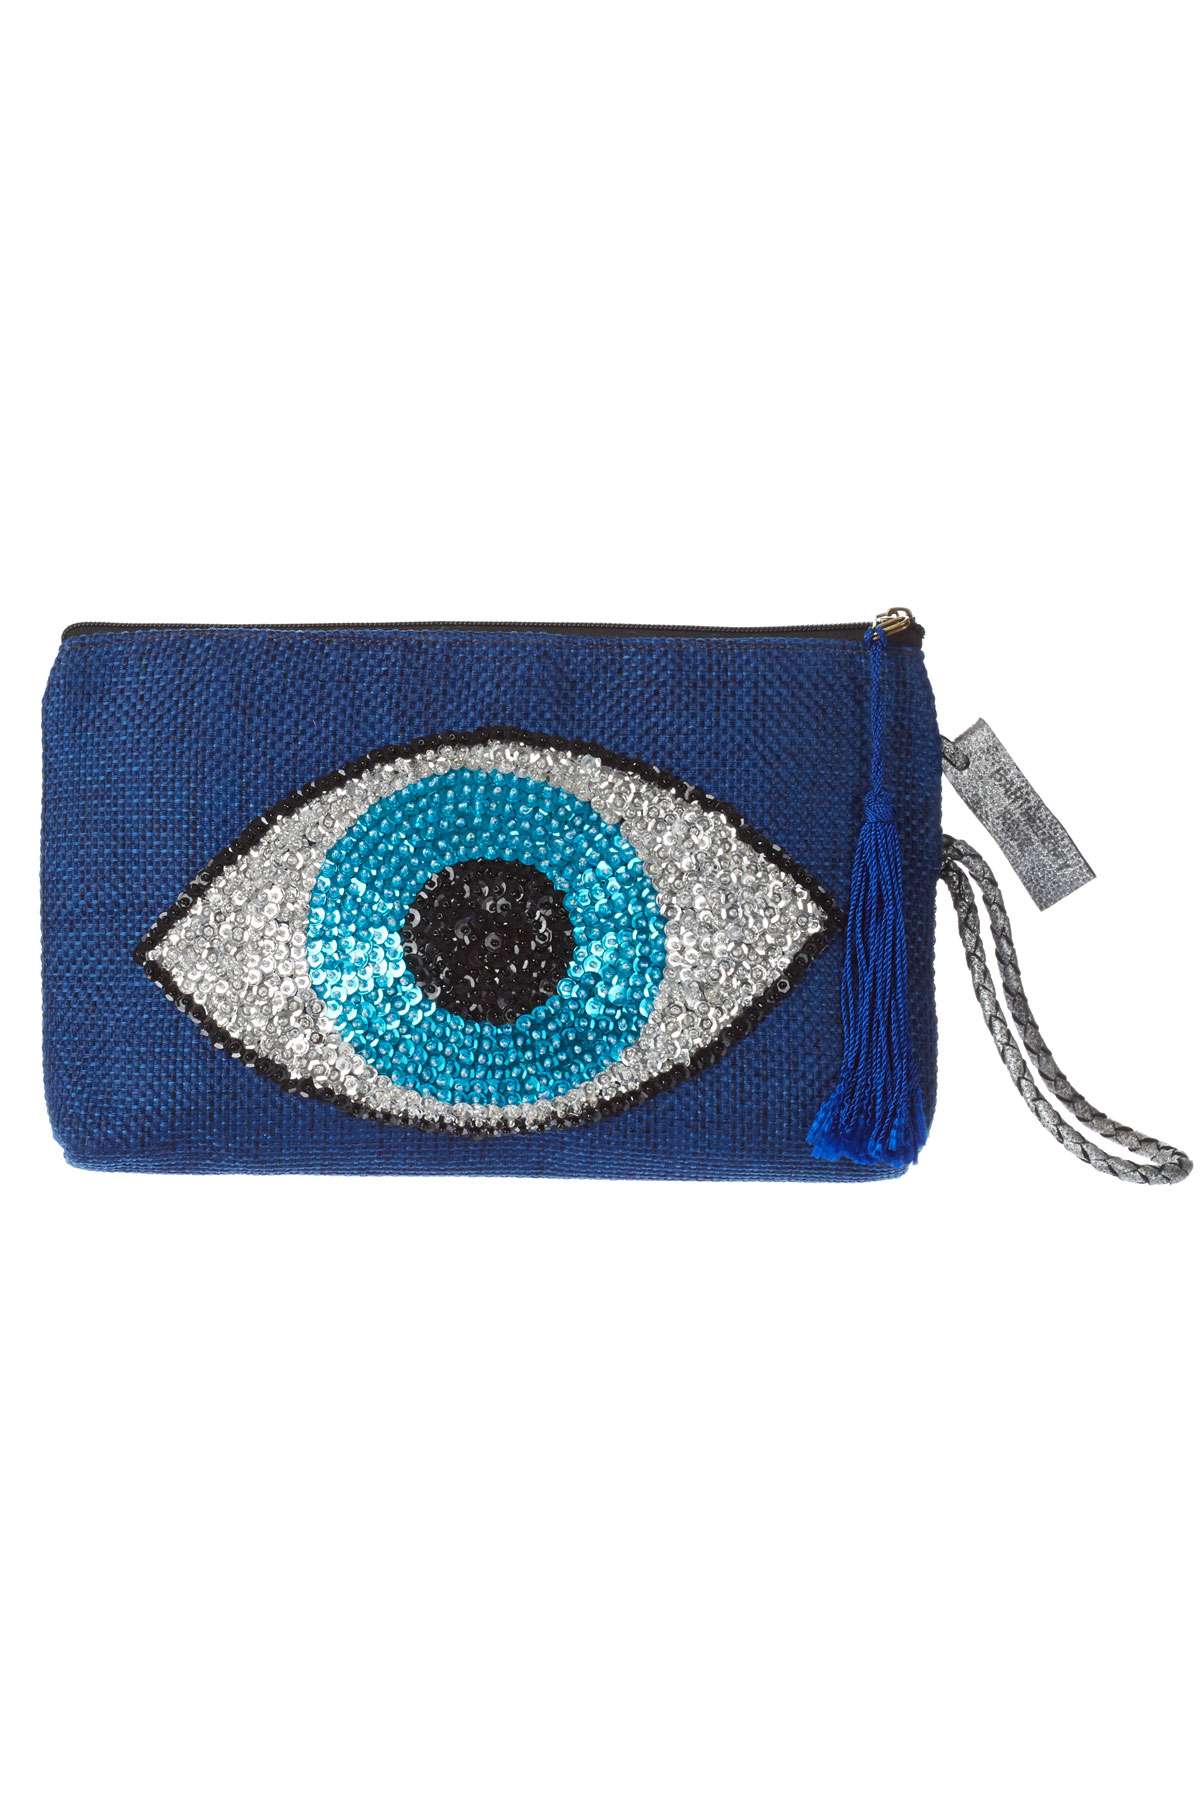 Handmade Canvas Sequin Evil Eye Clutch - Navy 1